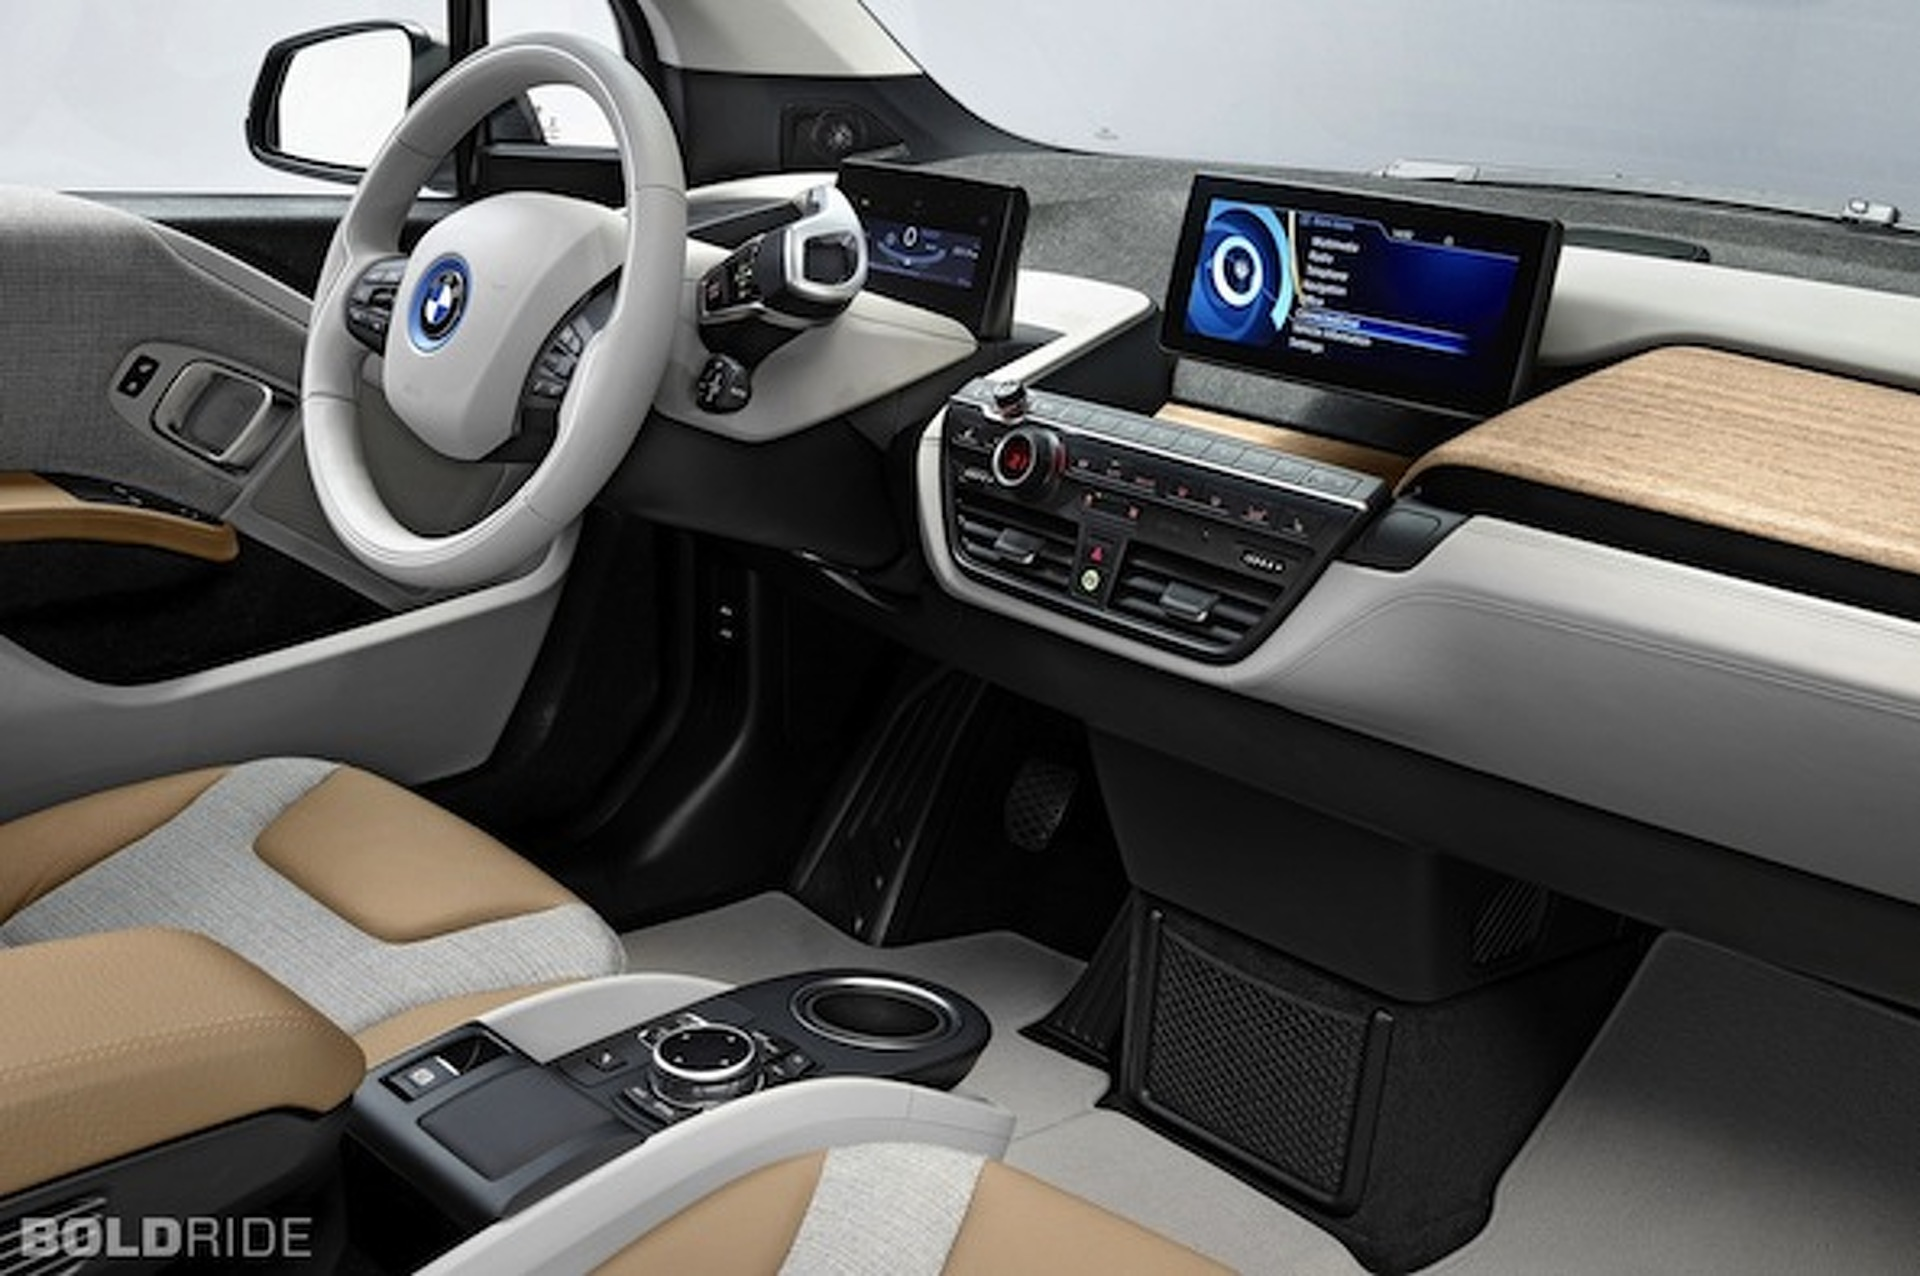 2014 BMW i3: Electric Fun for the Whole Family